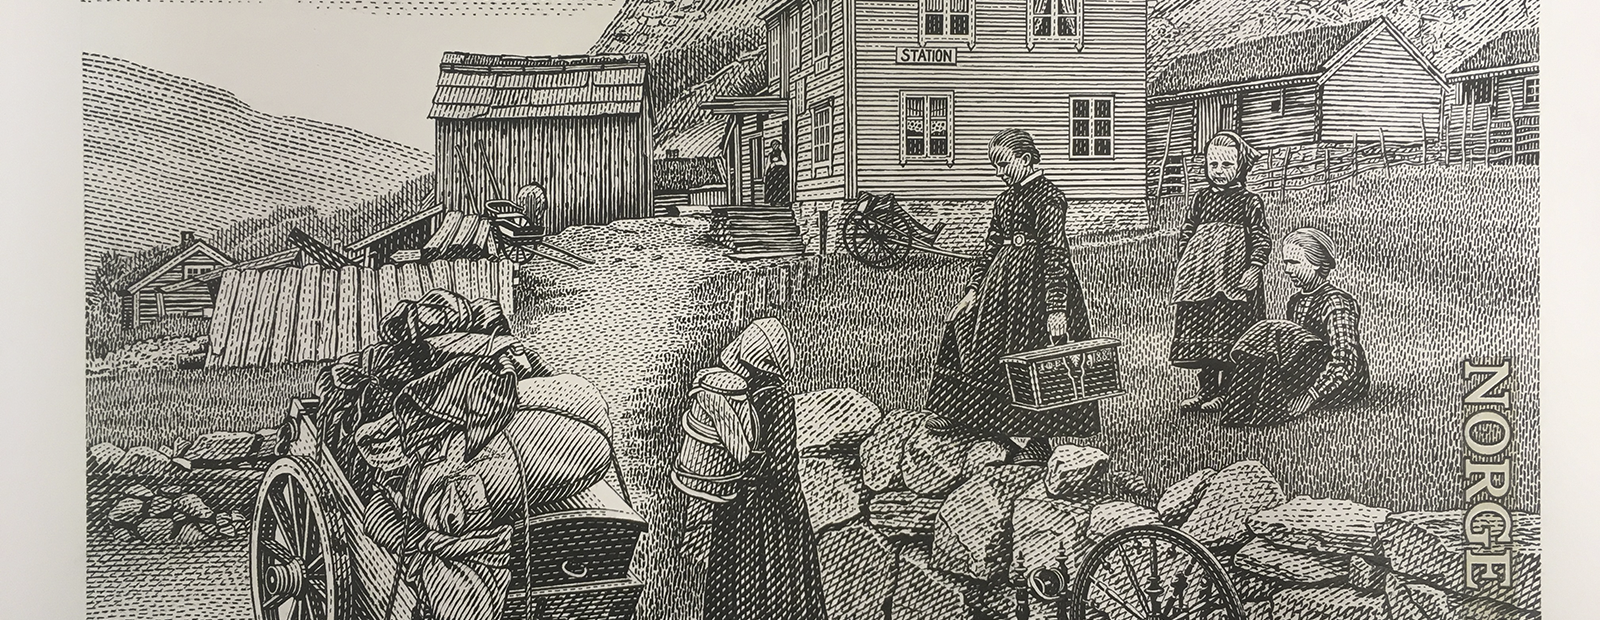 Detail of an engraved stamp showing travellers from a farm in the older days.